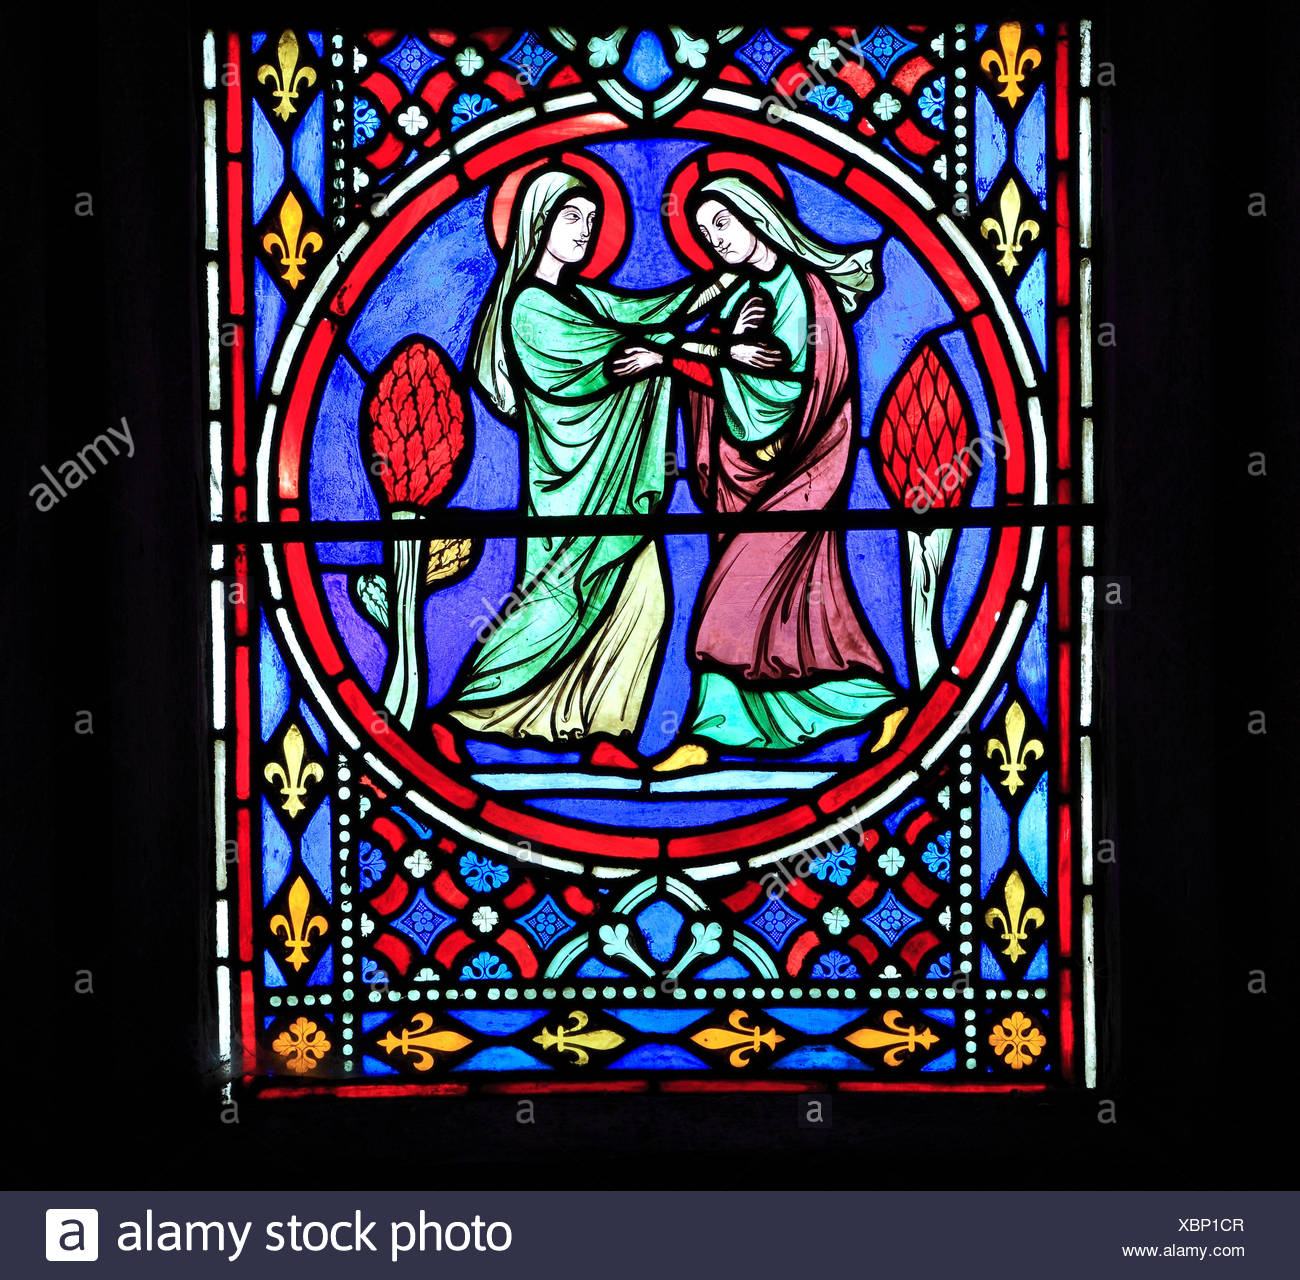 Nativity Window, stained glass by Oudinot of Paris, 1861, Feltwell Church, Norfolk, Visit of Virgin Mary to her cousin Elizabeth, visitation - Stock Image